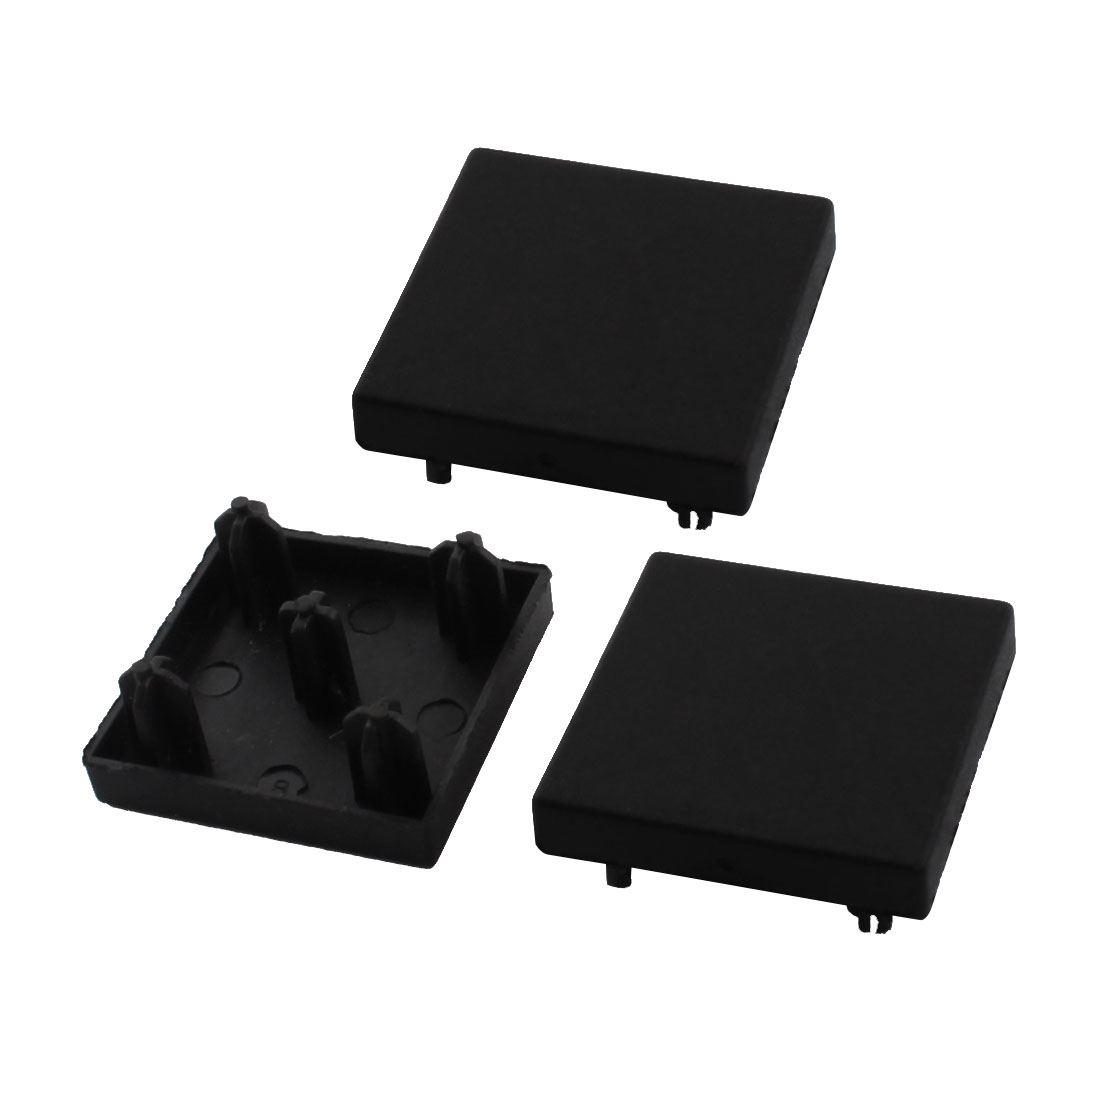 T-Slot Aluminum Profile Part Square Black Extrusion End Cap Cover 30mm x 30mm 3Pcs